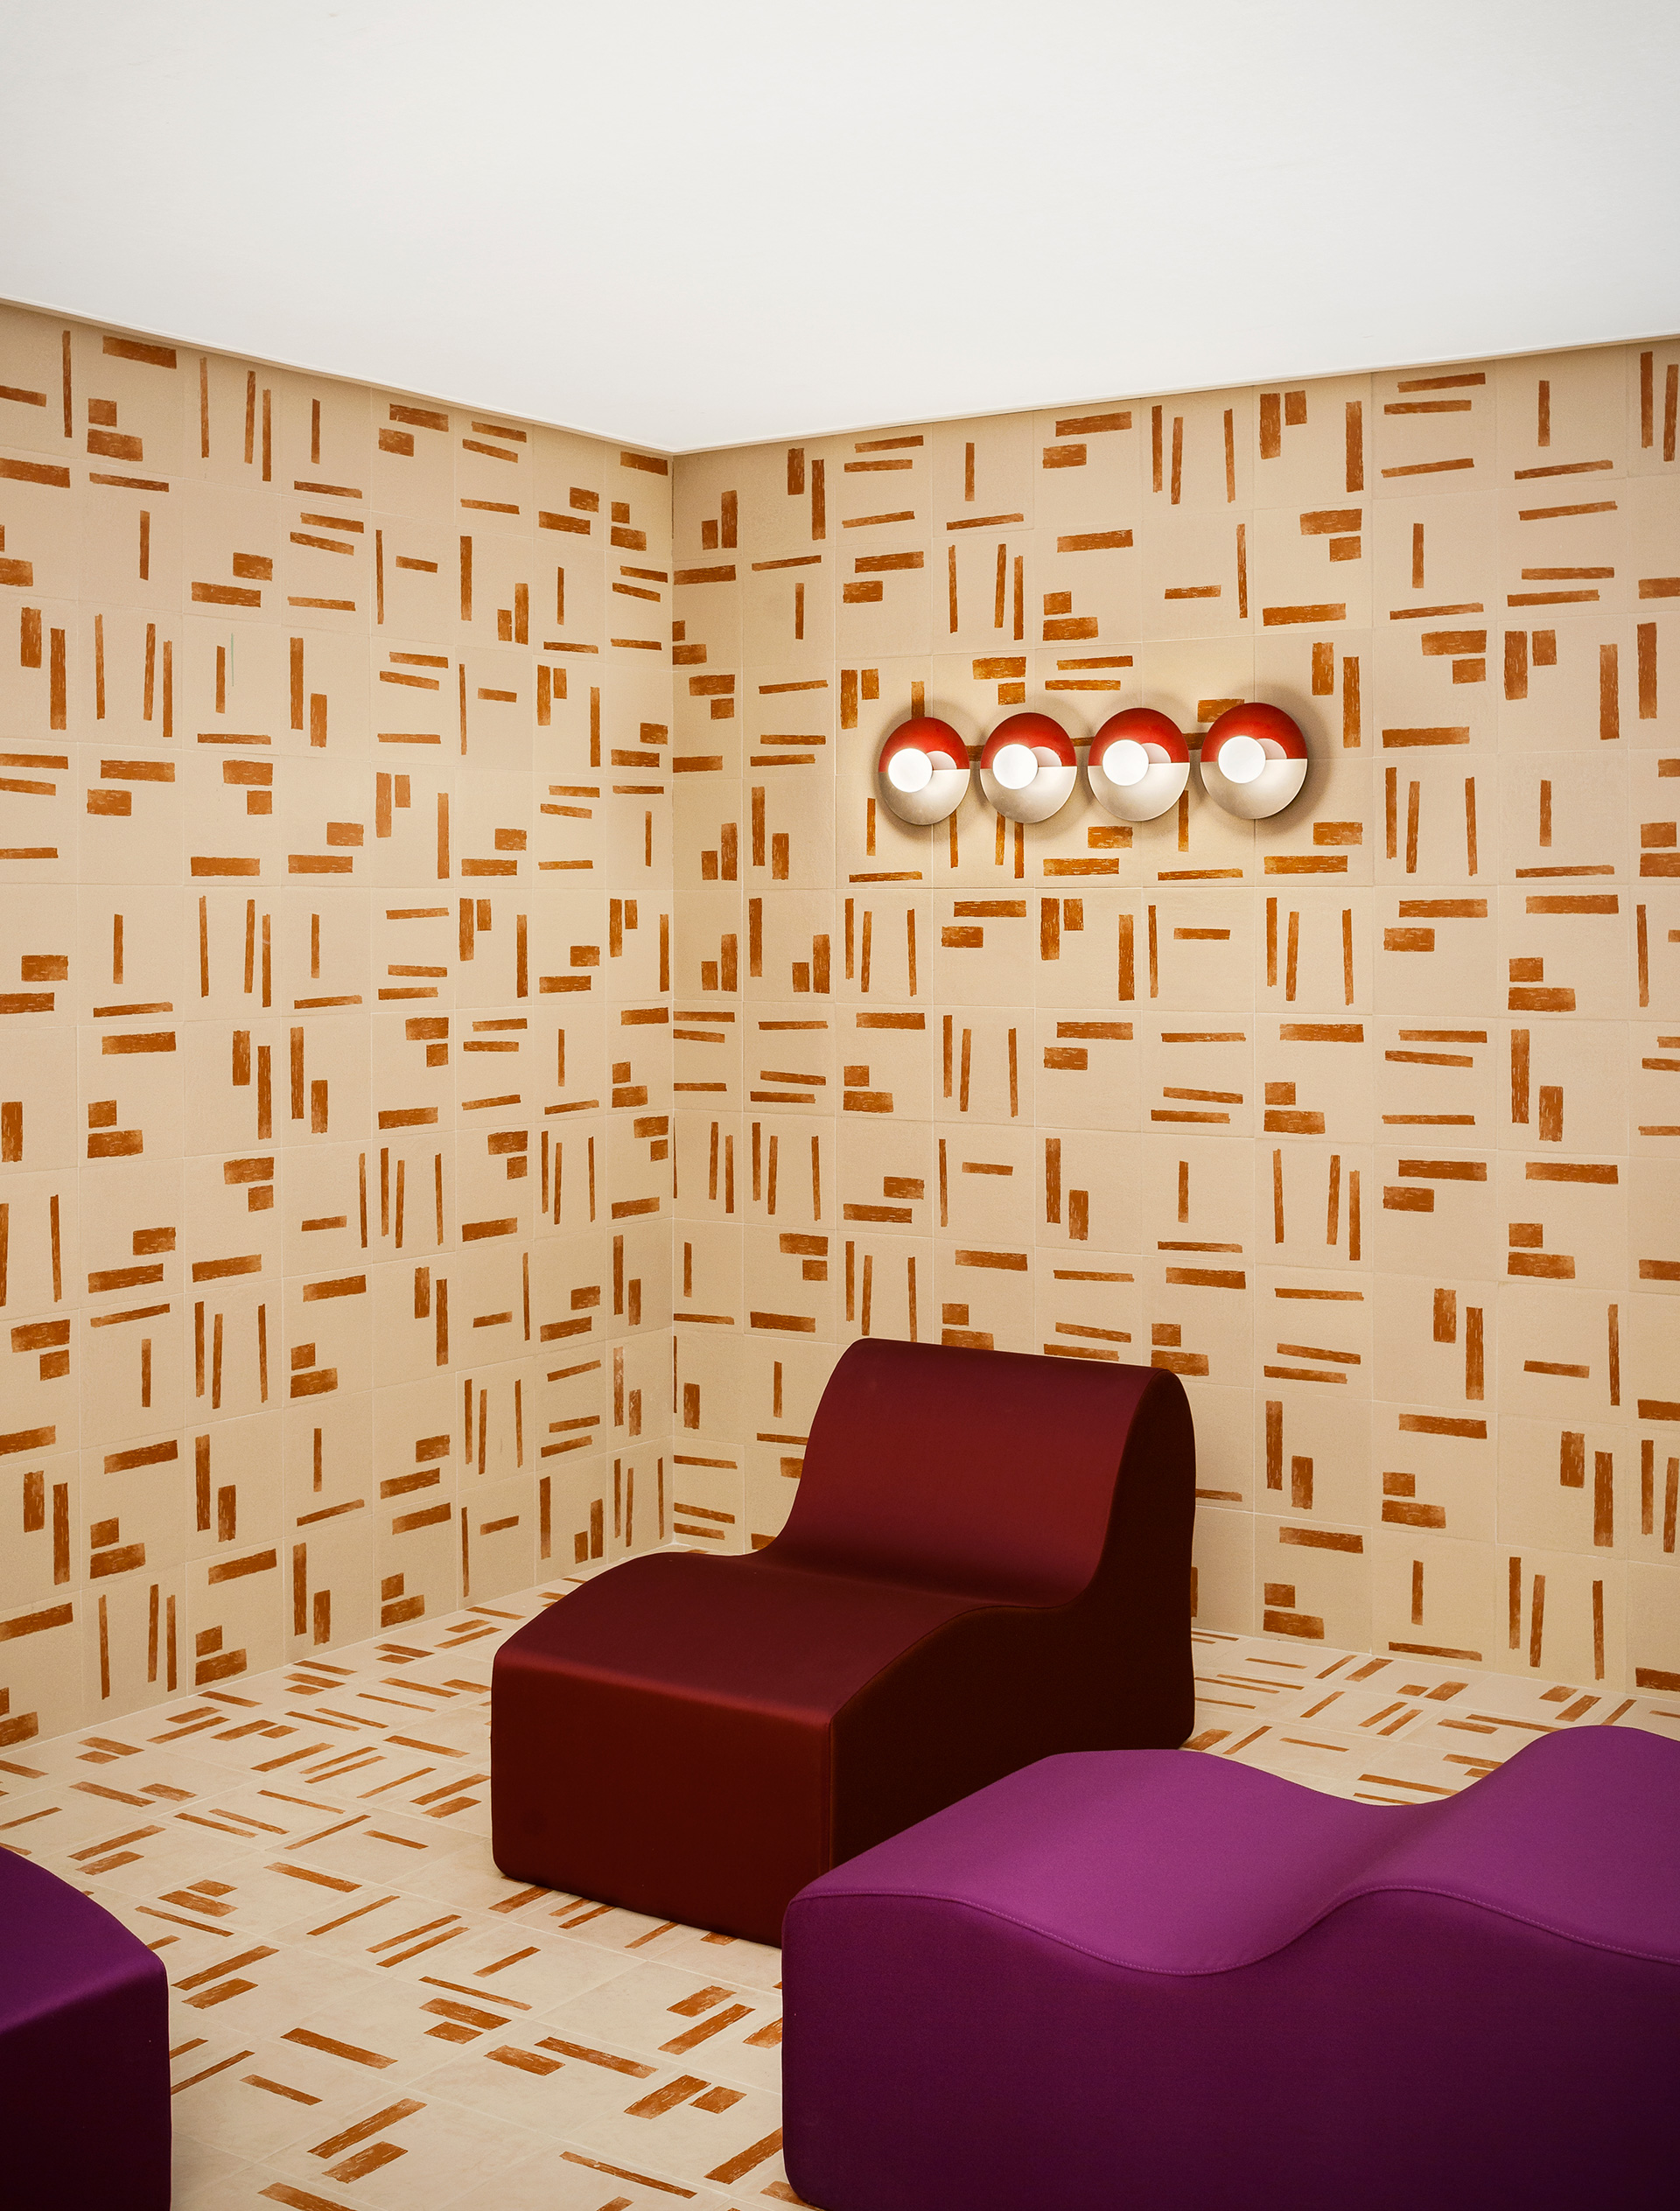 Walls in Ceramica Bardelli tiles| Studiopepe| Les Arcanistes - The Future is un/written| Salone del Mobile| STIR